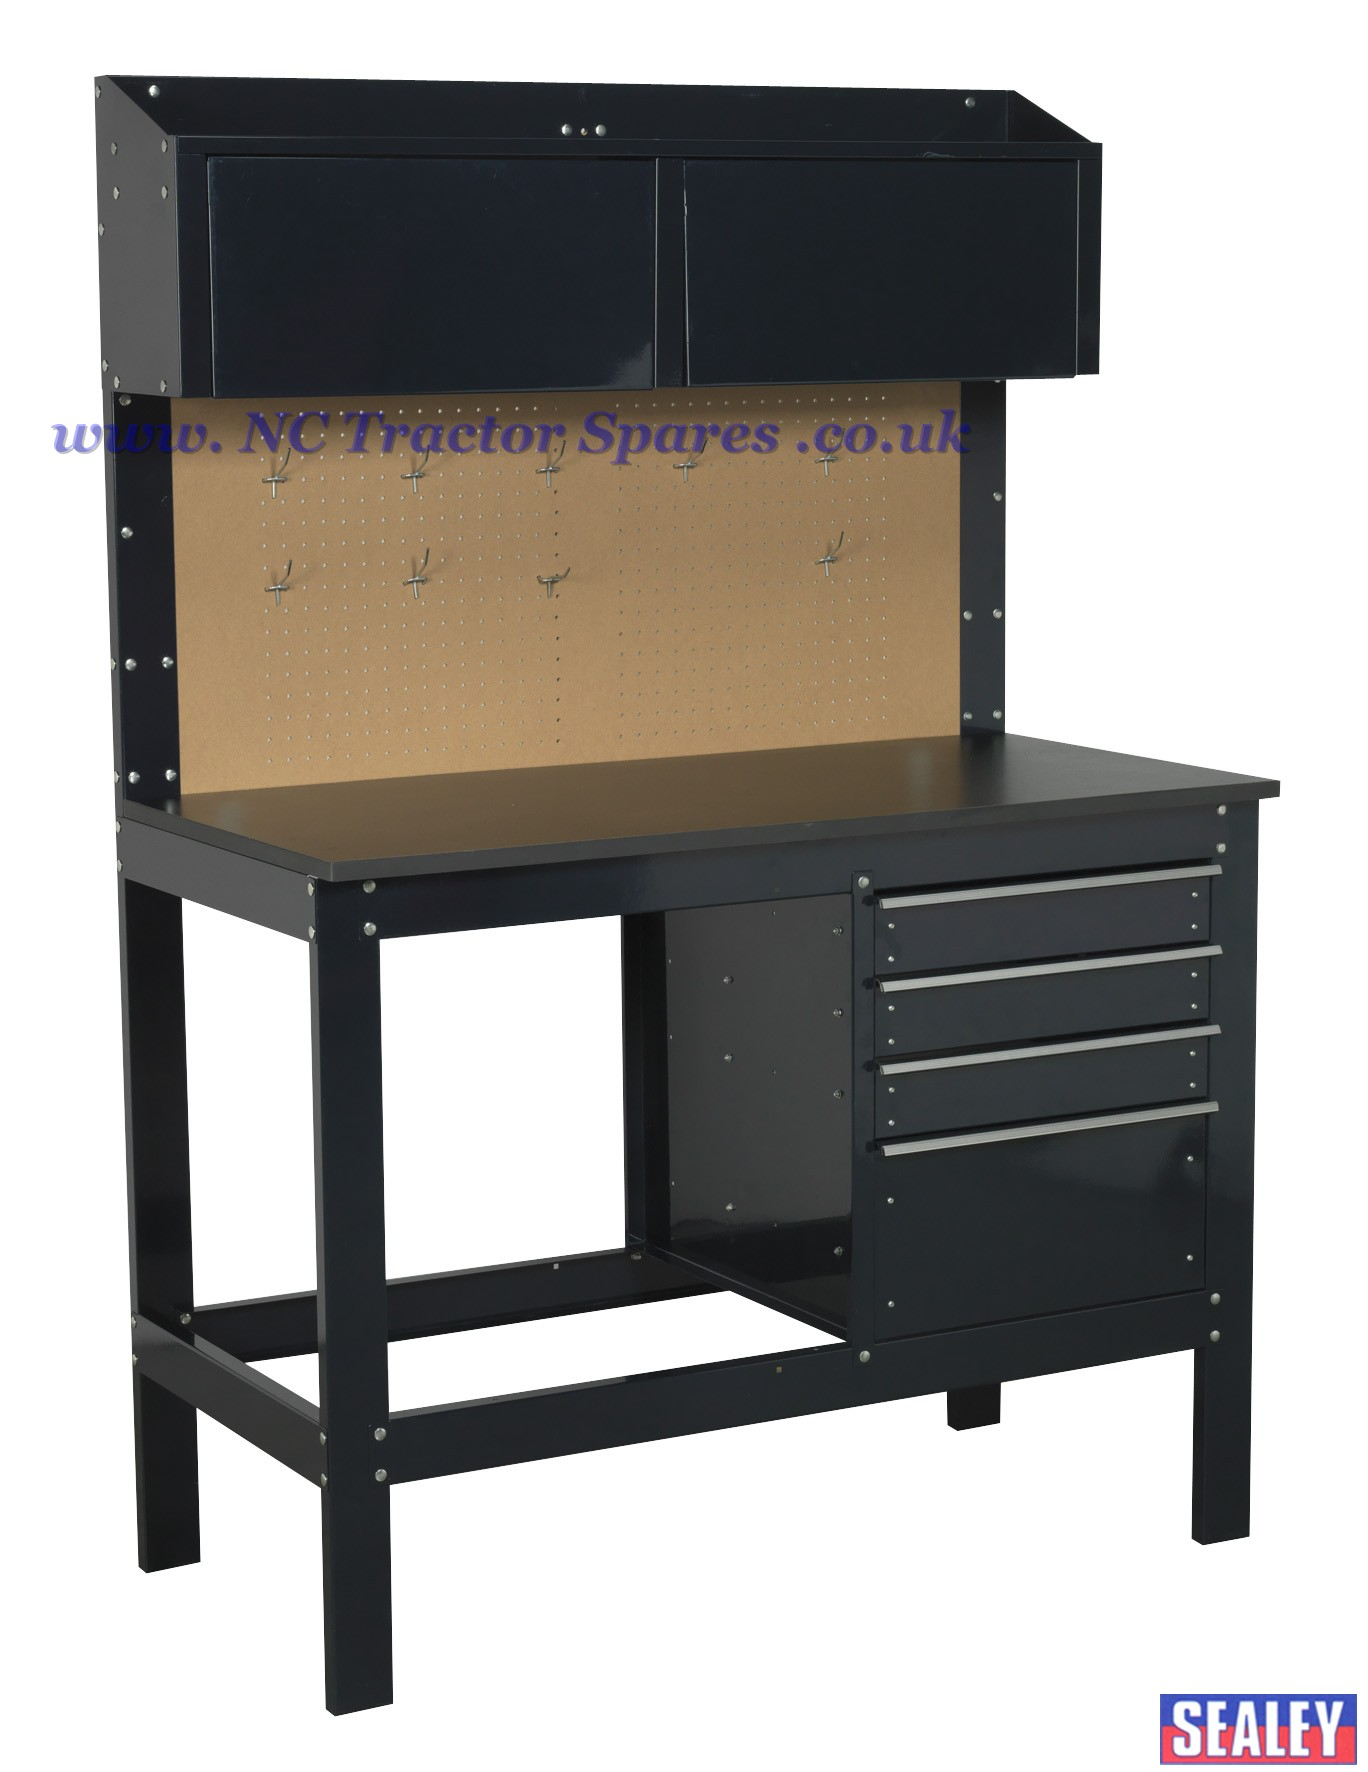 Astonishing Heavy Duty Steel Workbench With 4 Drawers 2 Top Cabinets Andrewgaddart Wooden Chair Designs For Living Room Andrewgaddartcom